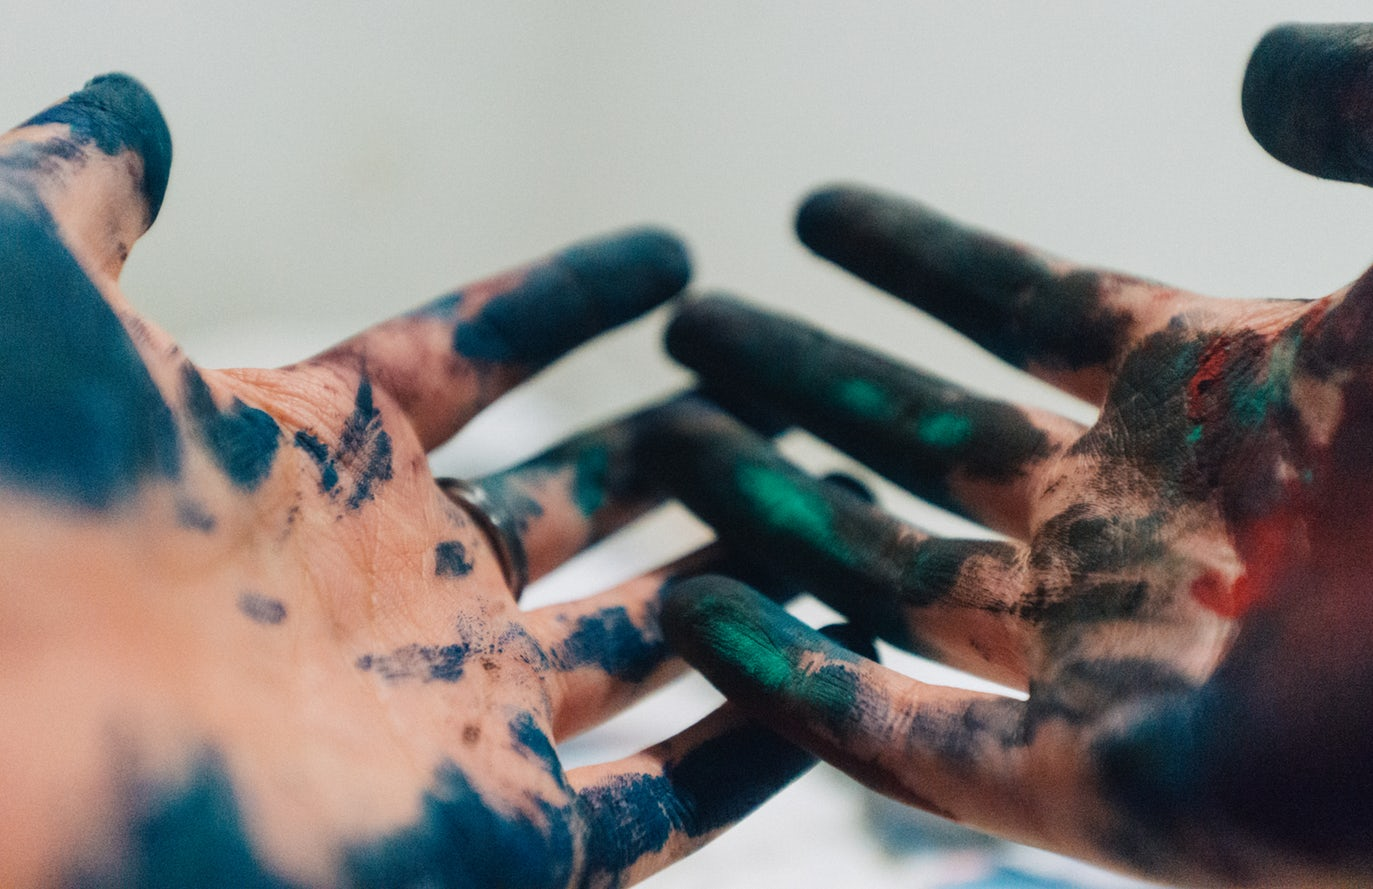 Artist's hands with paint on them